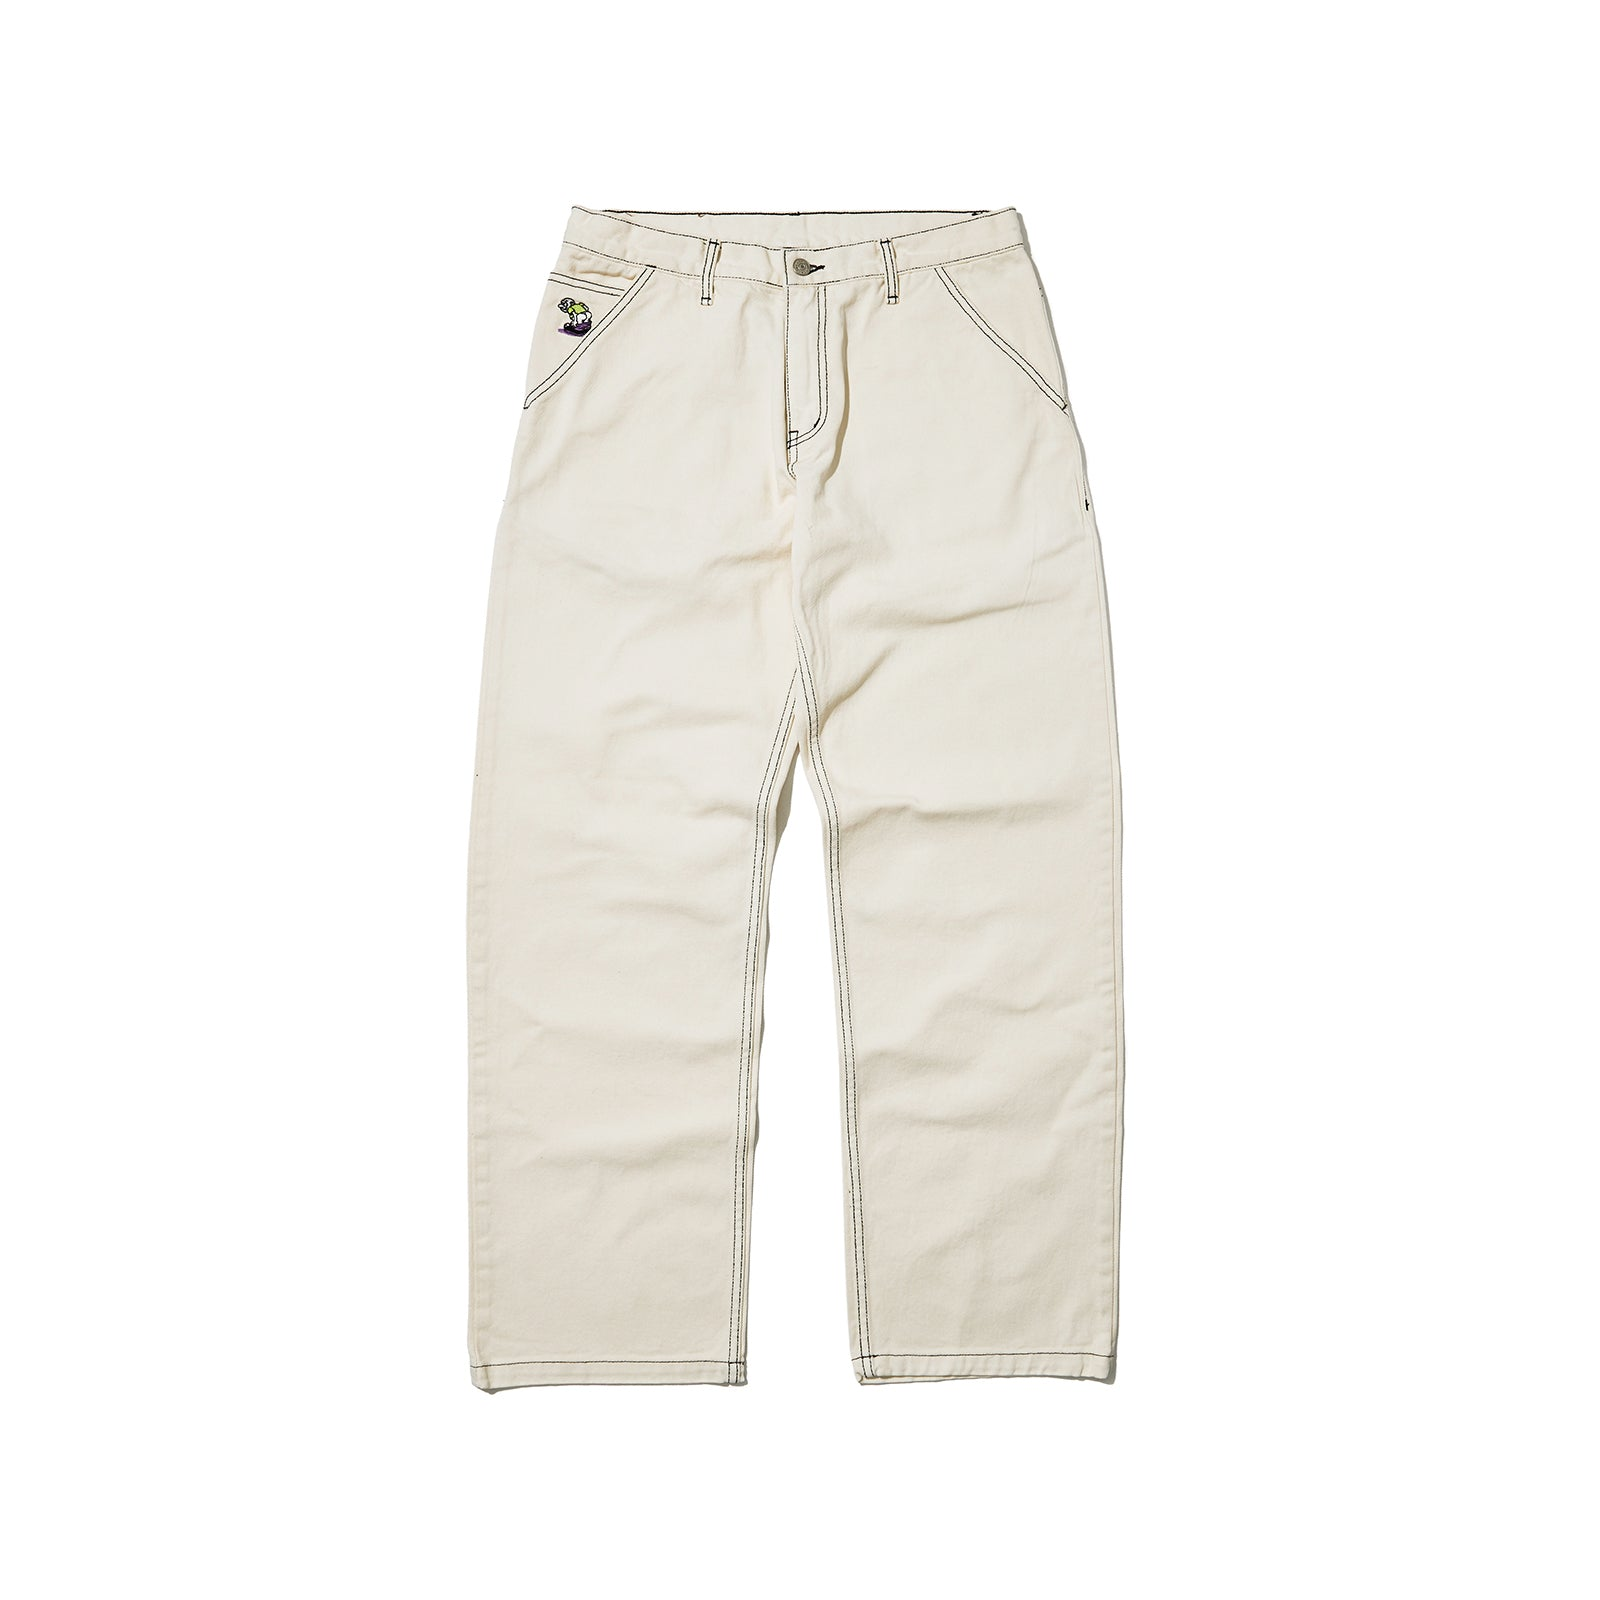 5-POCKET DENIM PANTS (WHITE)